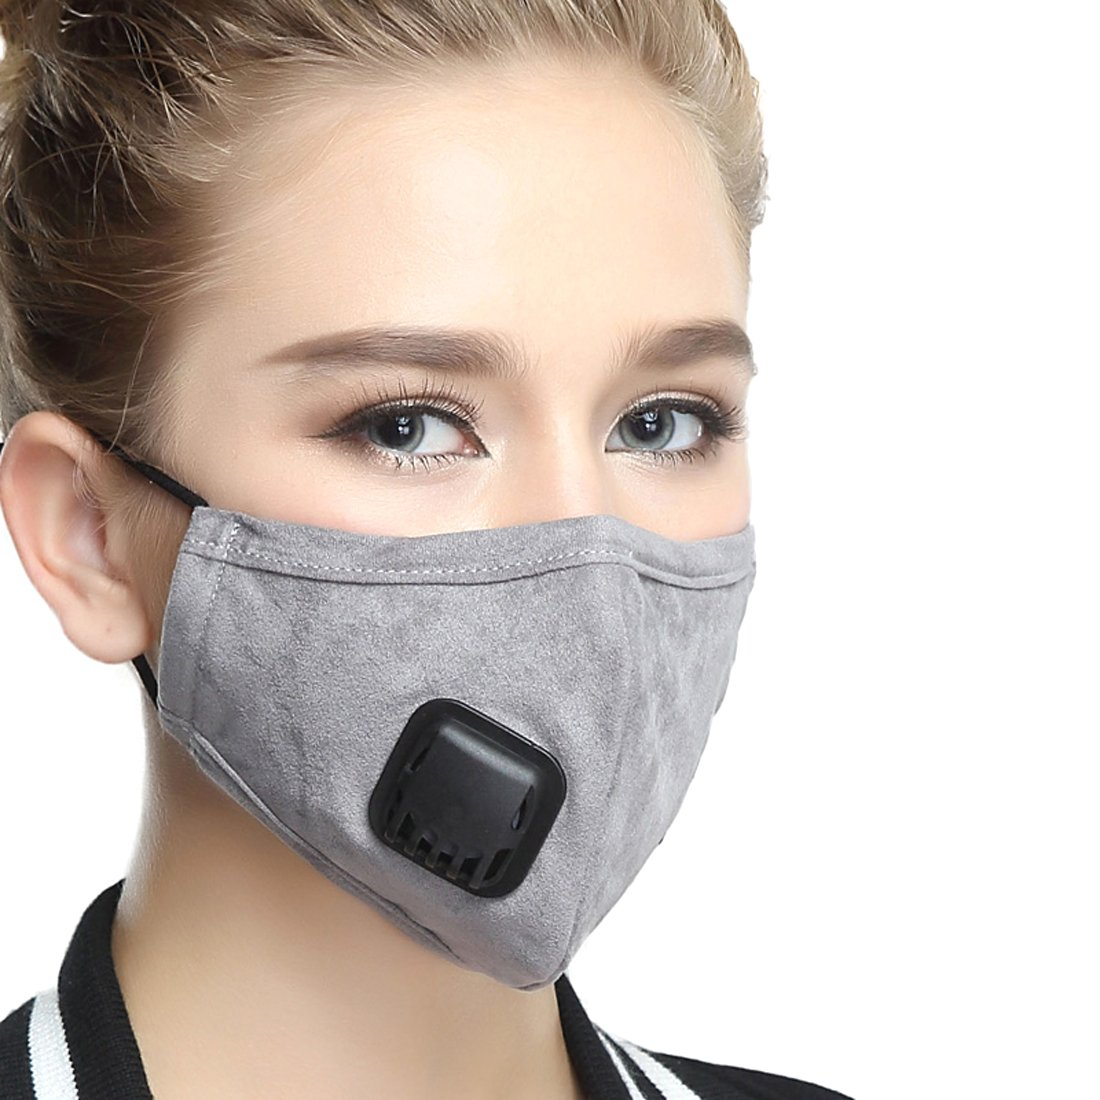 Healthyair Masks PM 2.5 Anti Pollution Mask with Valve Pynogeez Washable Dust Respirator Cotton Mouth Masks with Replaceable 5 Layer Filter (Mask + 2 Filters) (Grey, Medium(Women's))